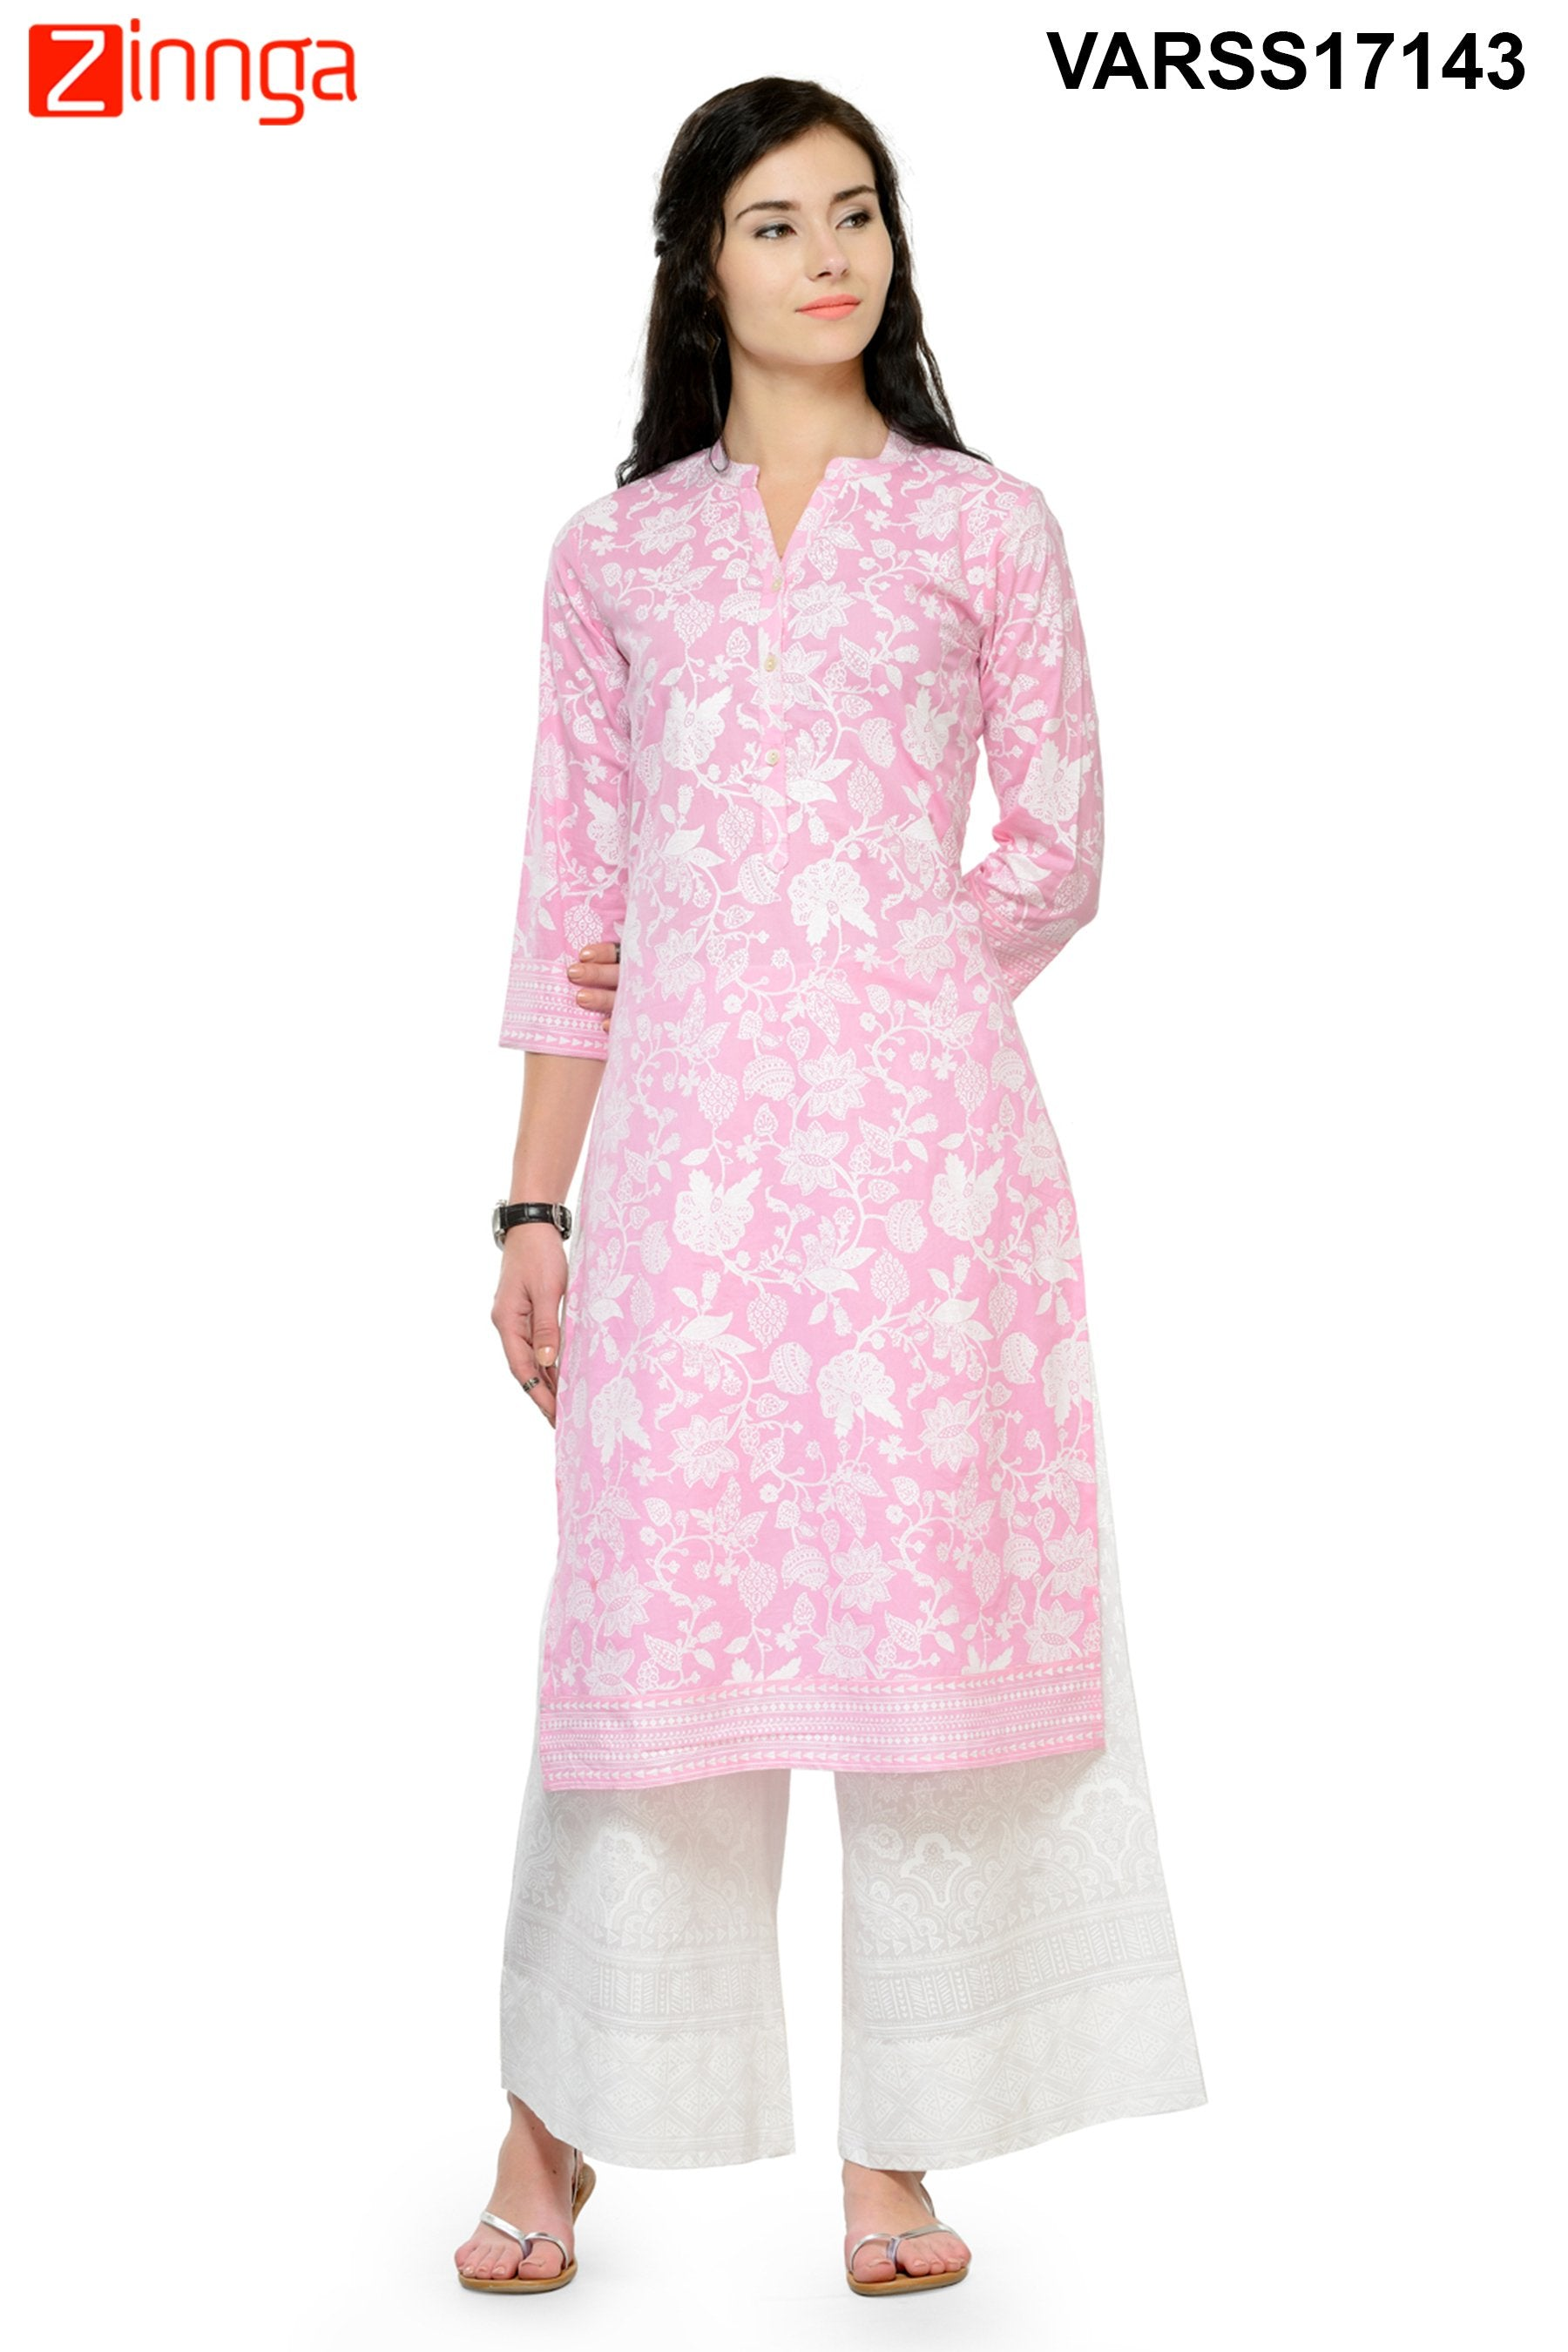 c745c98a03 Baby Pink Color Cotton Stitched Kurti | Zinnga